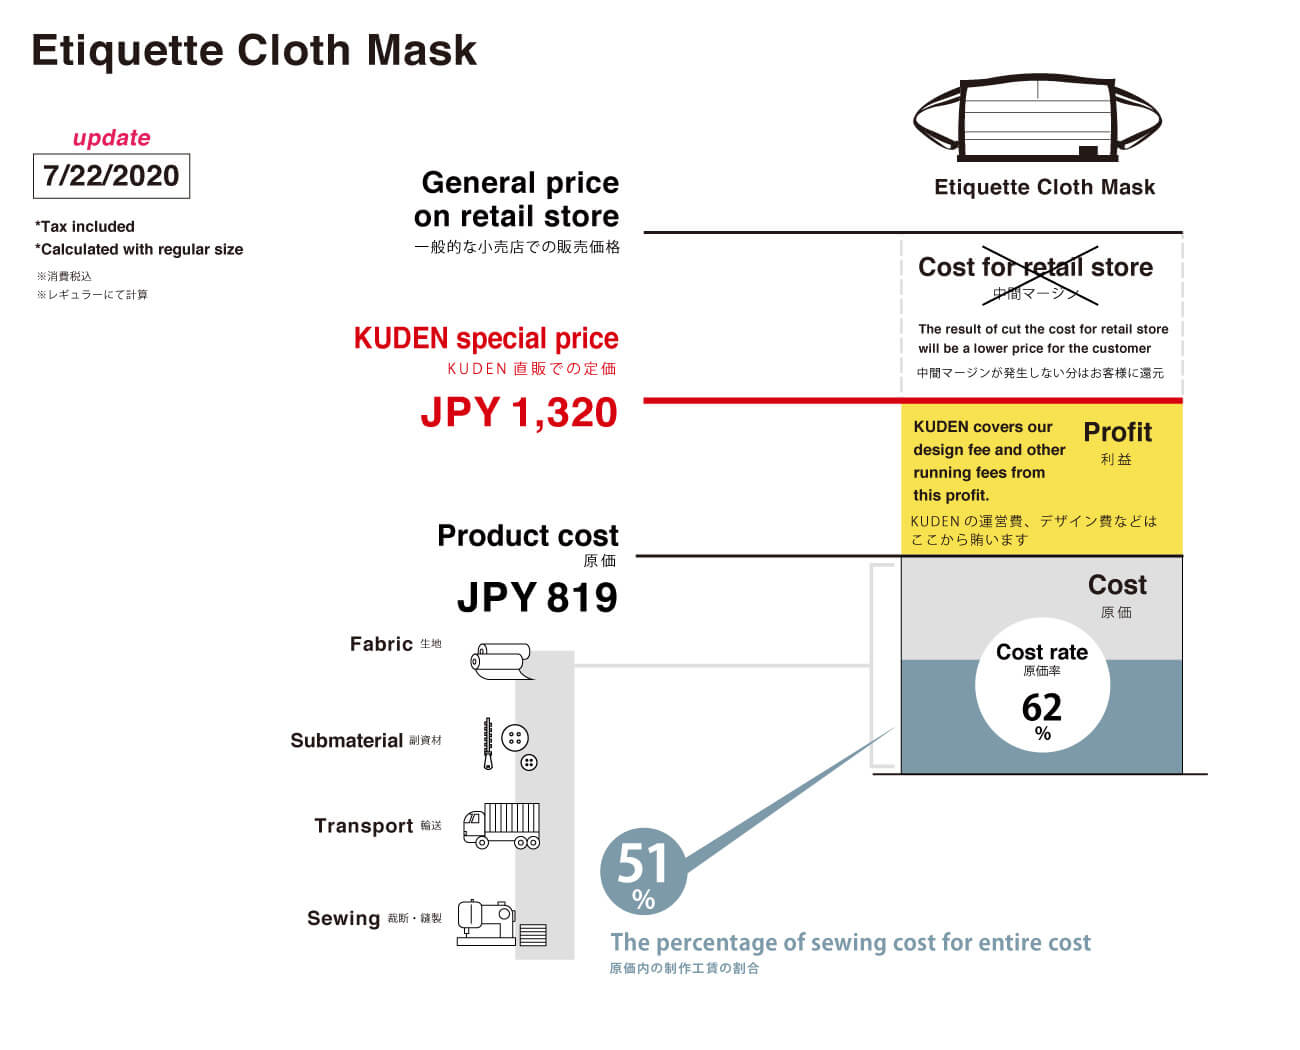 Price sheet of Etiquette Cloth Mask from KUDEN by TAKAHIRO SATO